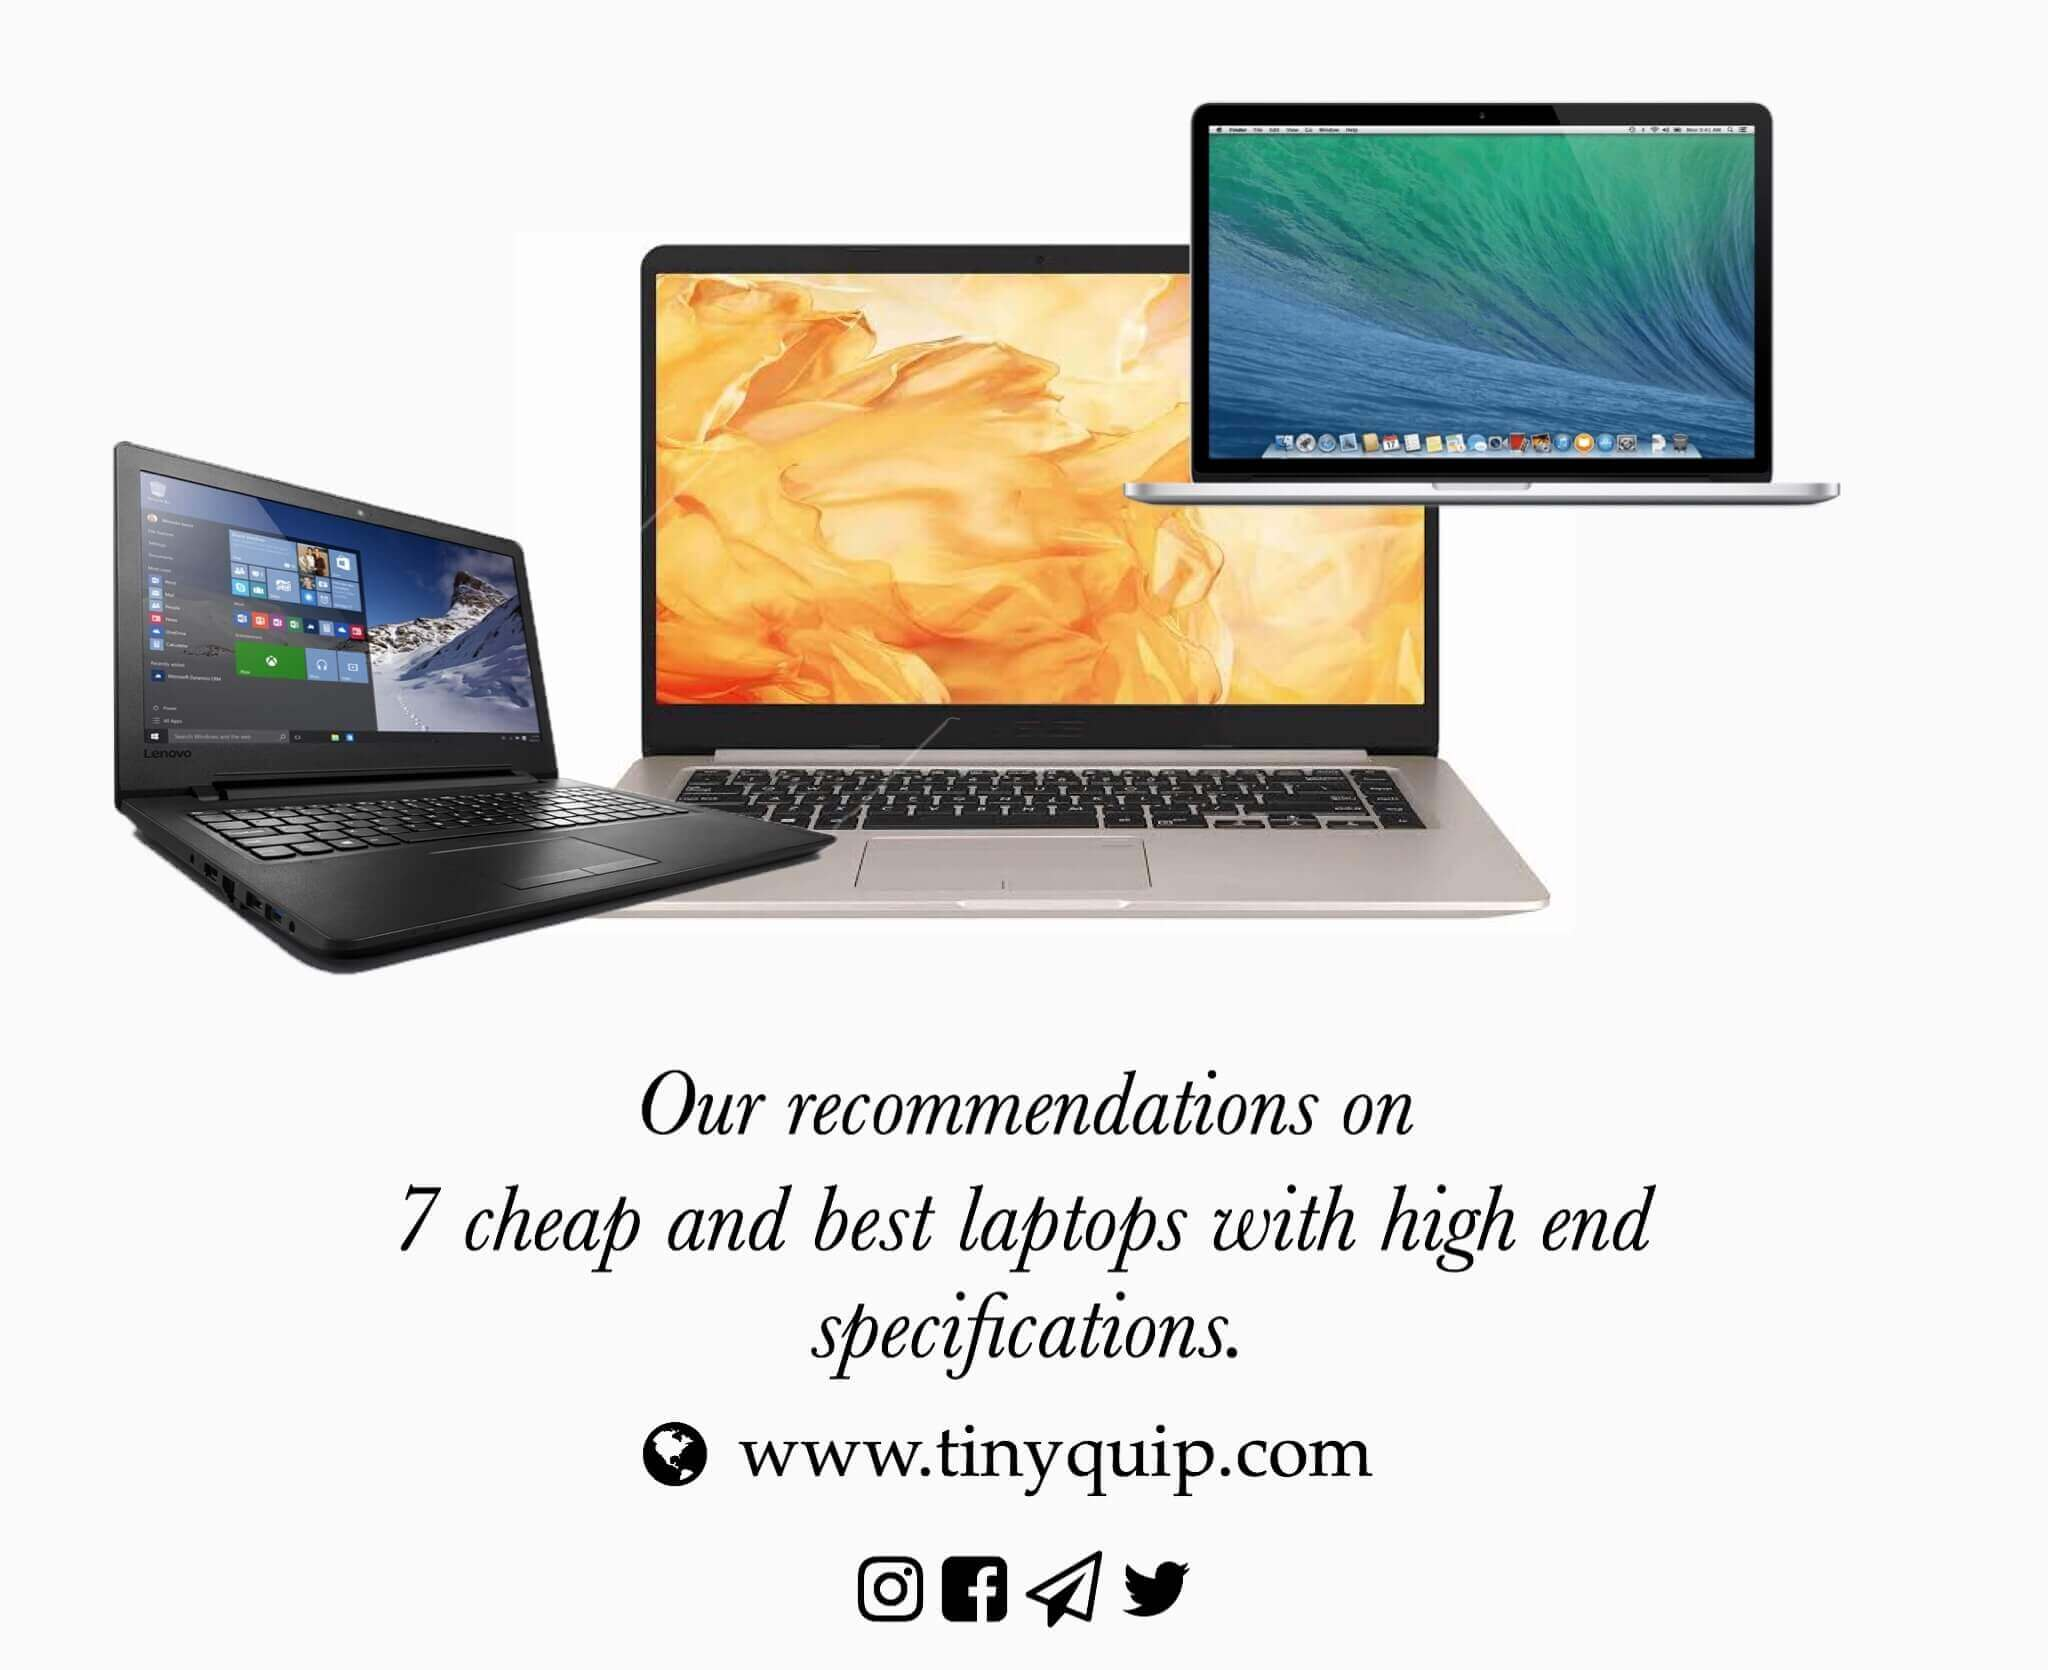 buy cheap and best laptops